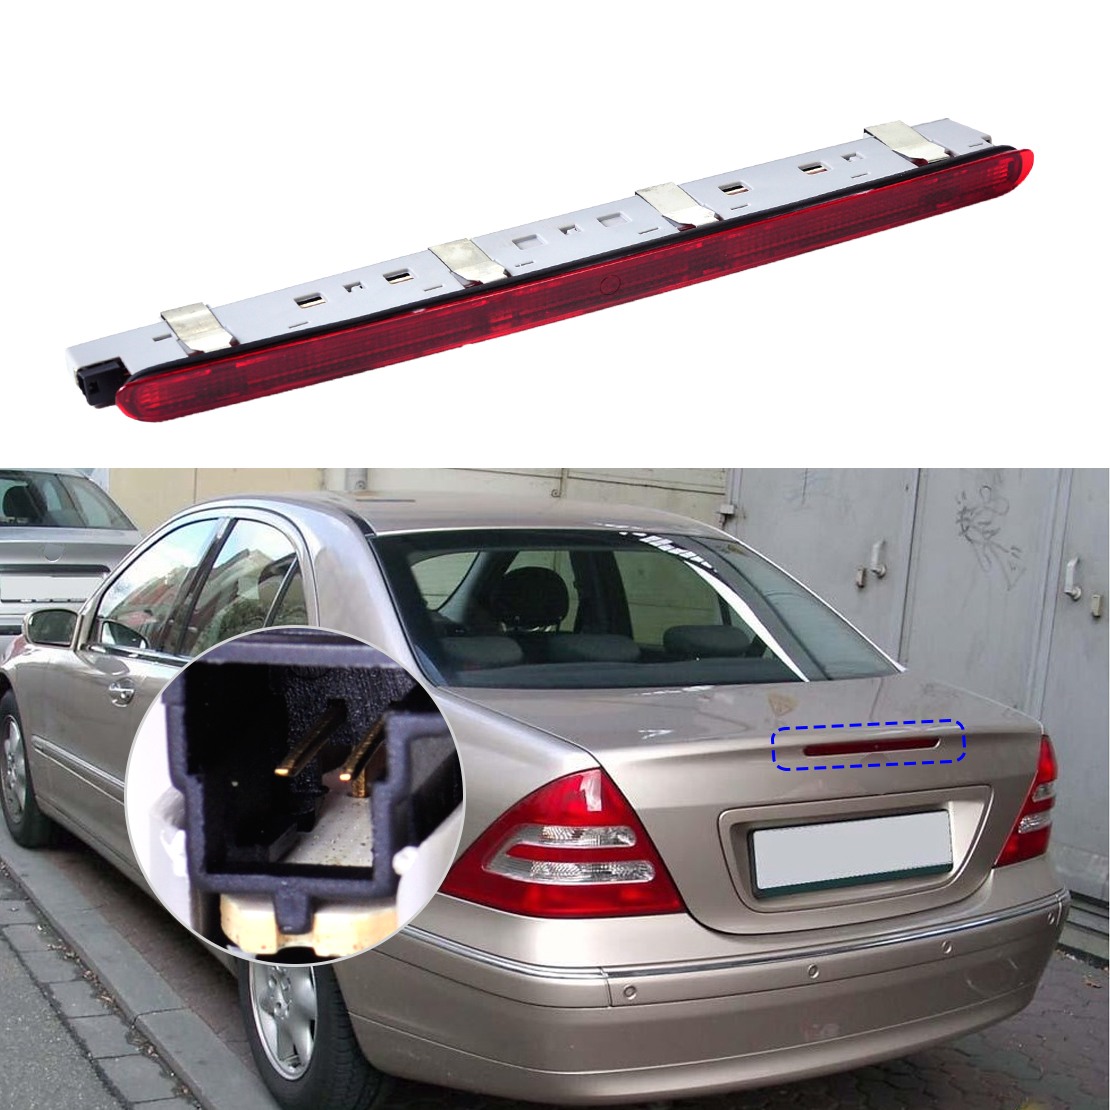 hight resolution of beler rear tail stop lamp third brake light for mercedes benz w203 c230 c240 c280 c350 2000 2001 2002 2003 2004 2005 2006 2007